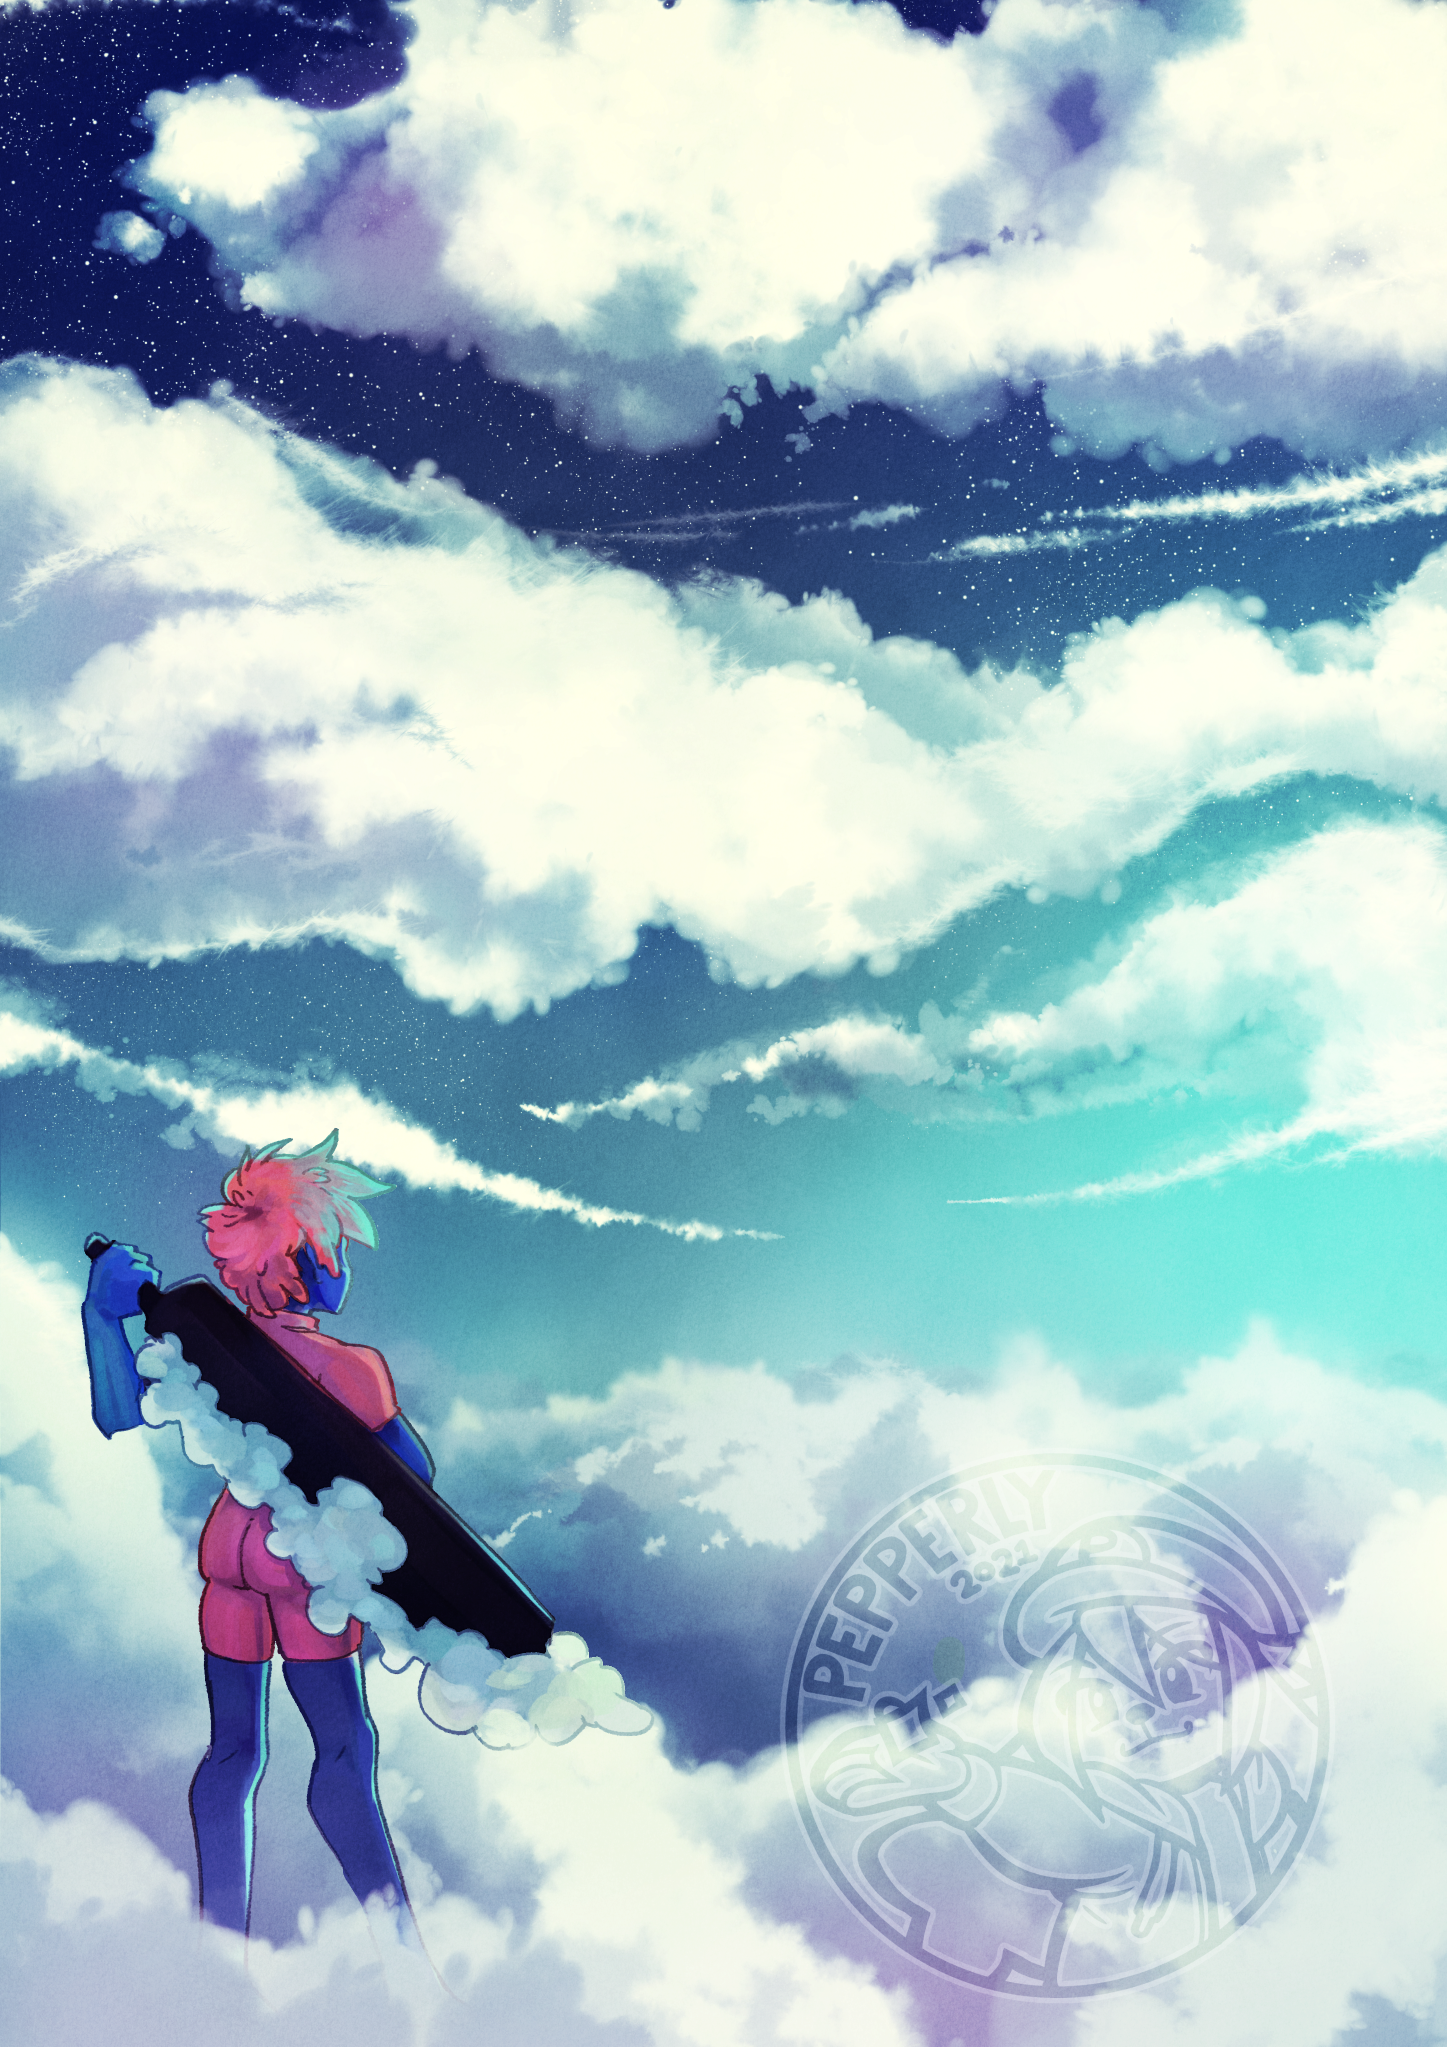 Look at all those clouds that need bashing